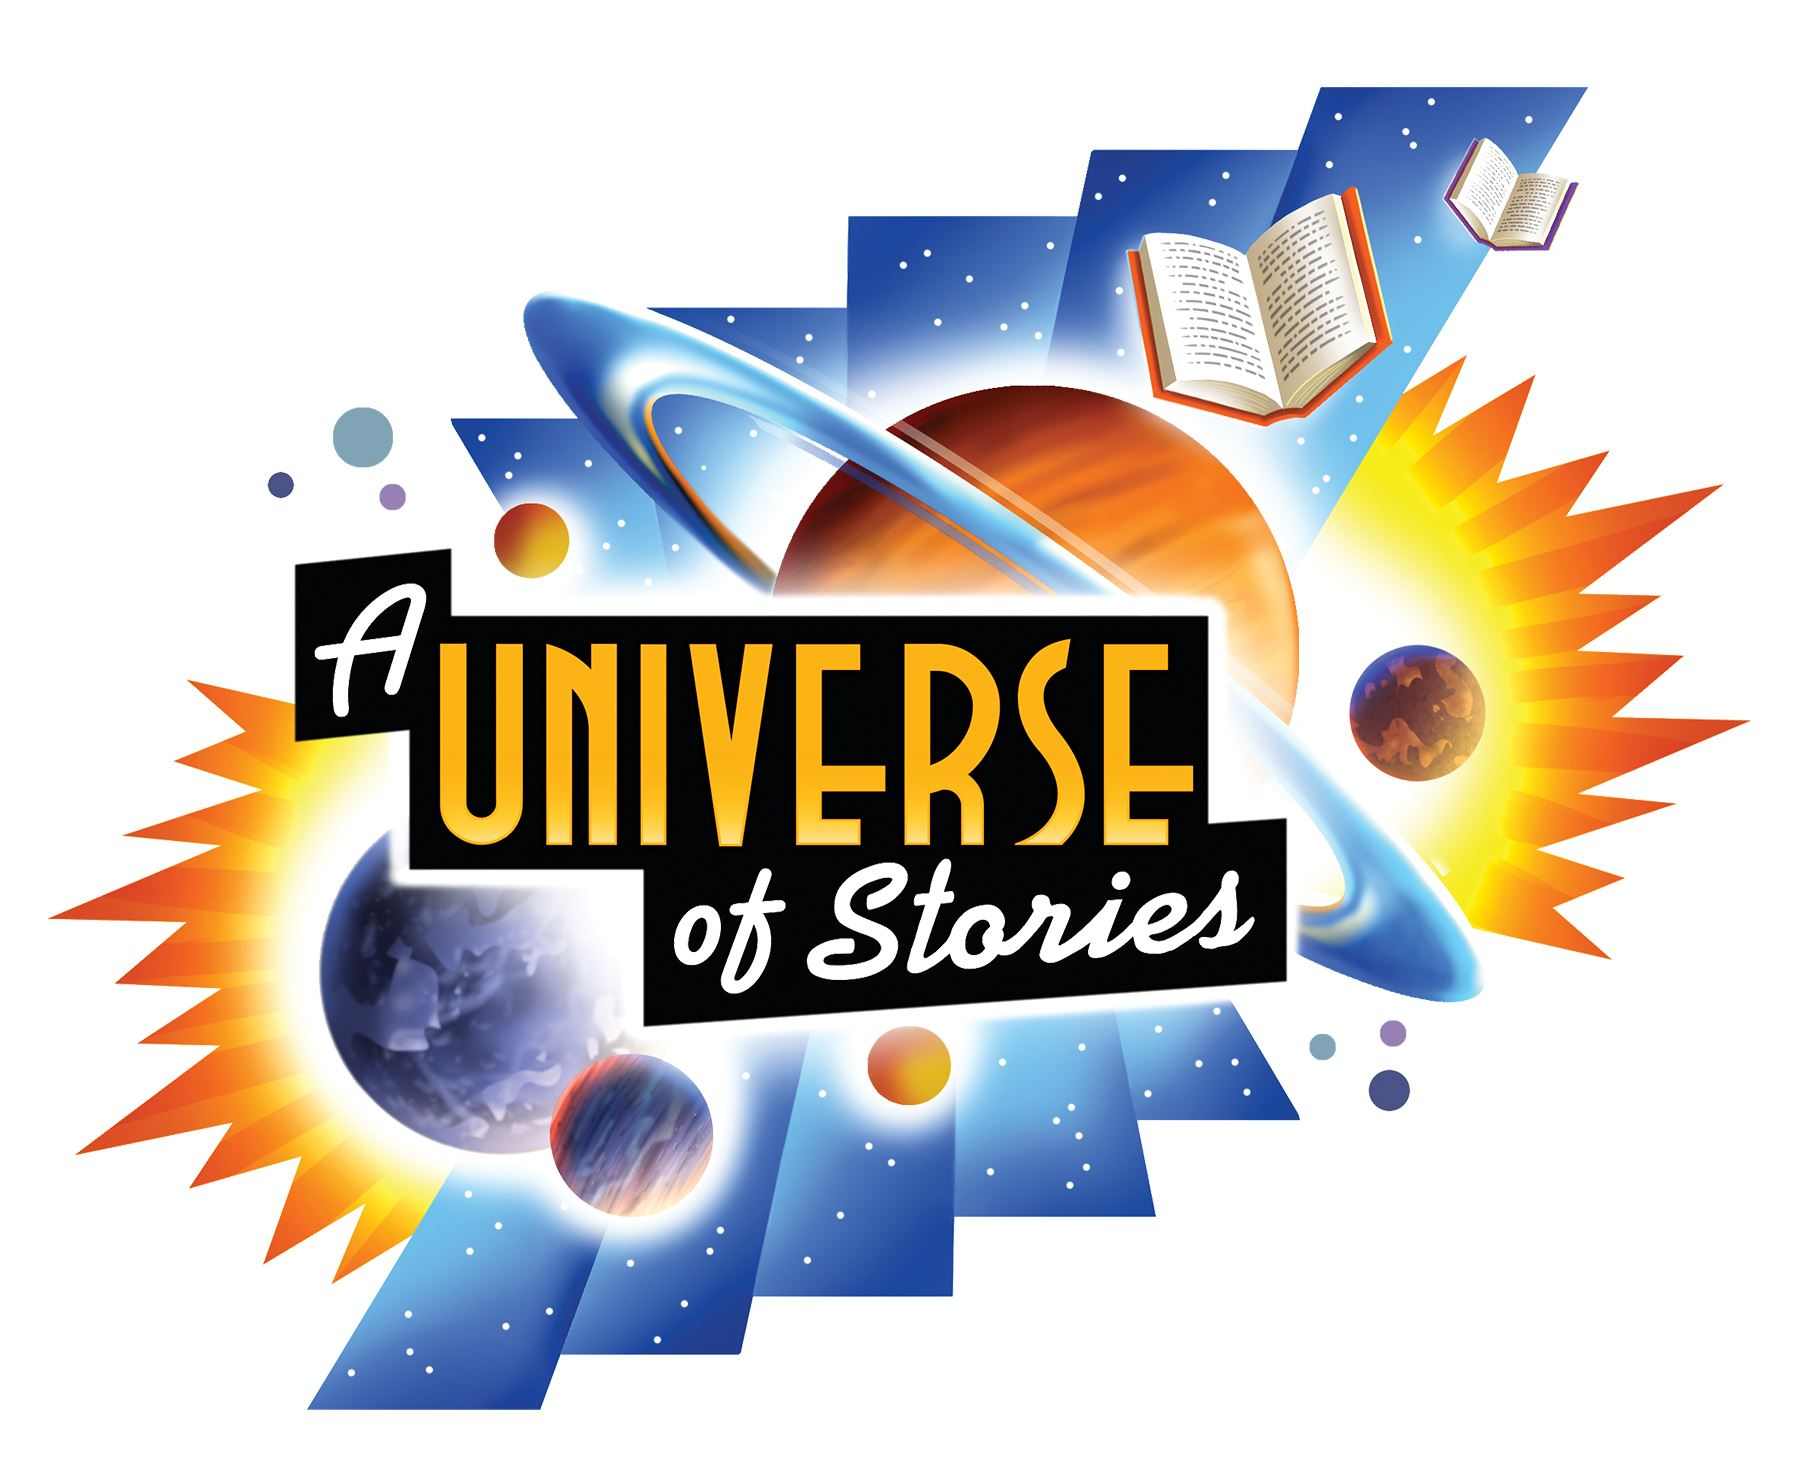 A universe of stories logo with floating planets and books